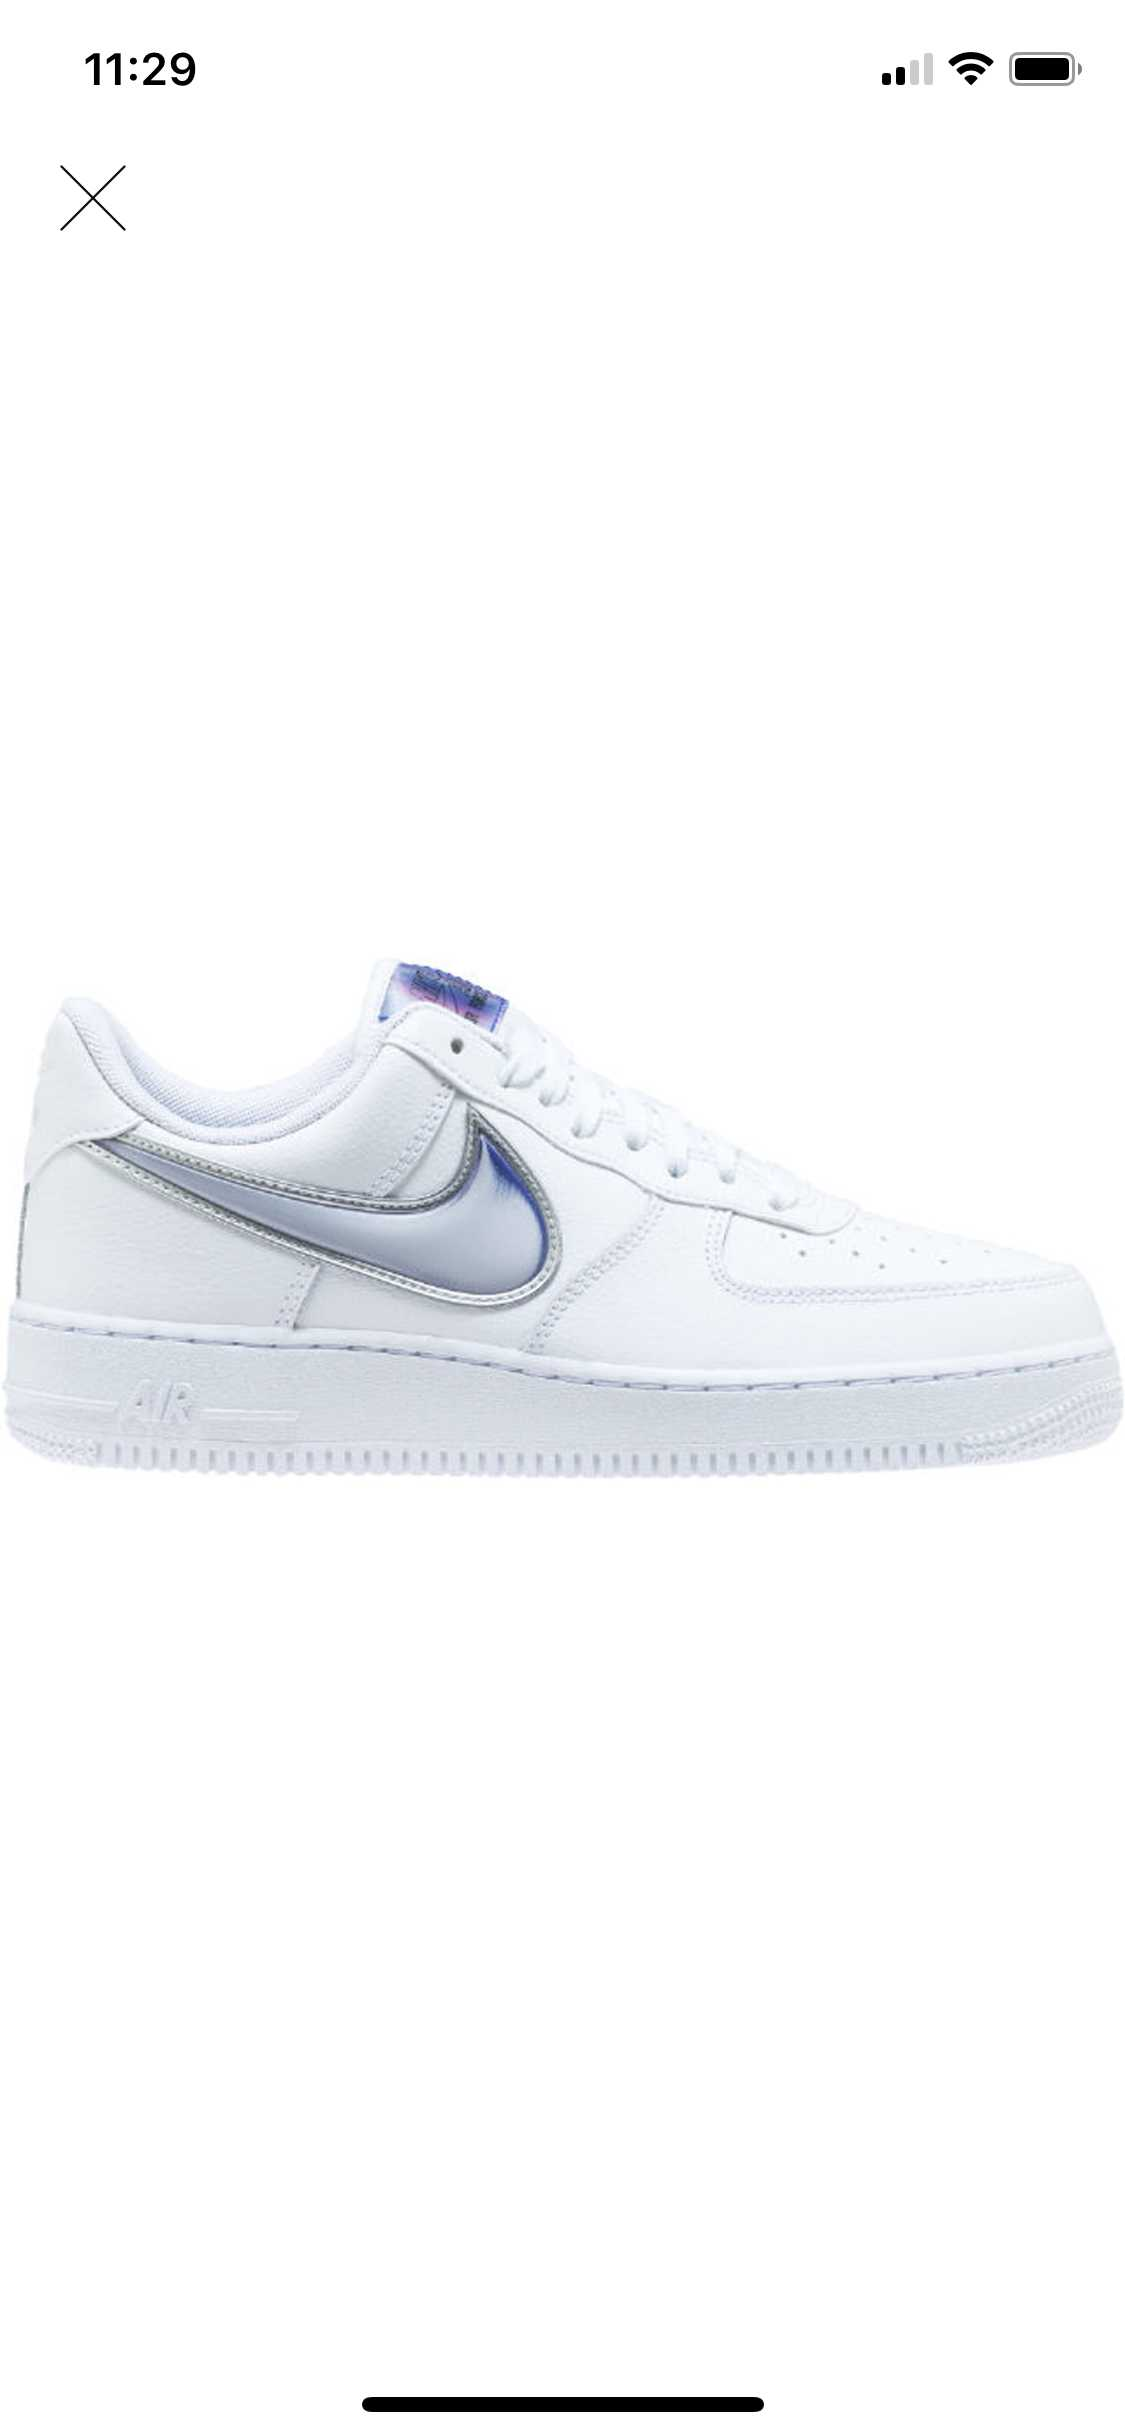 Air Force 1 Low Oversized Swoosh White raver blue